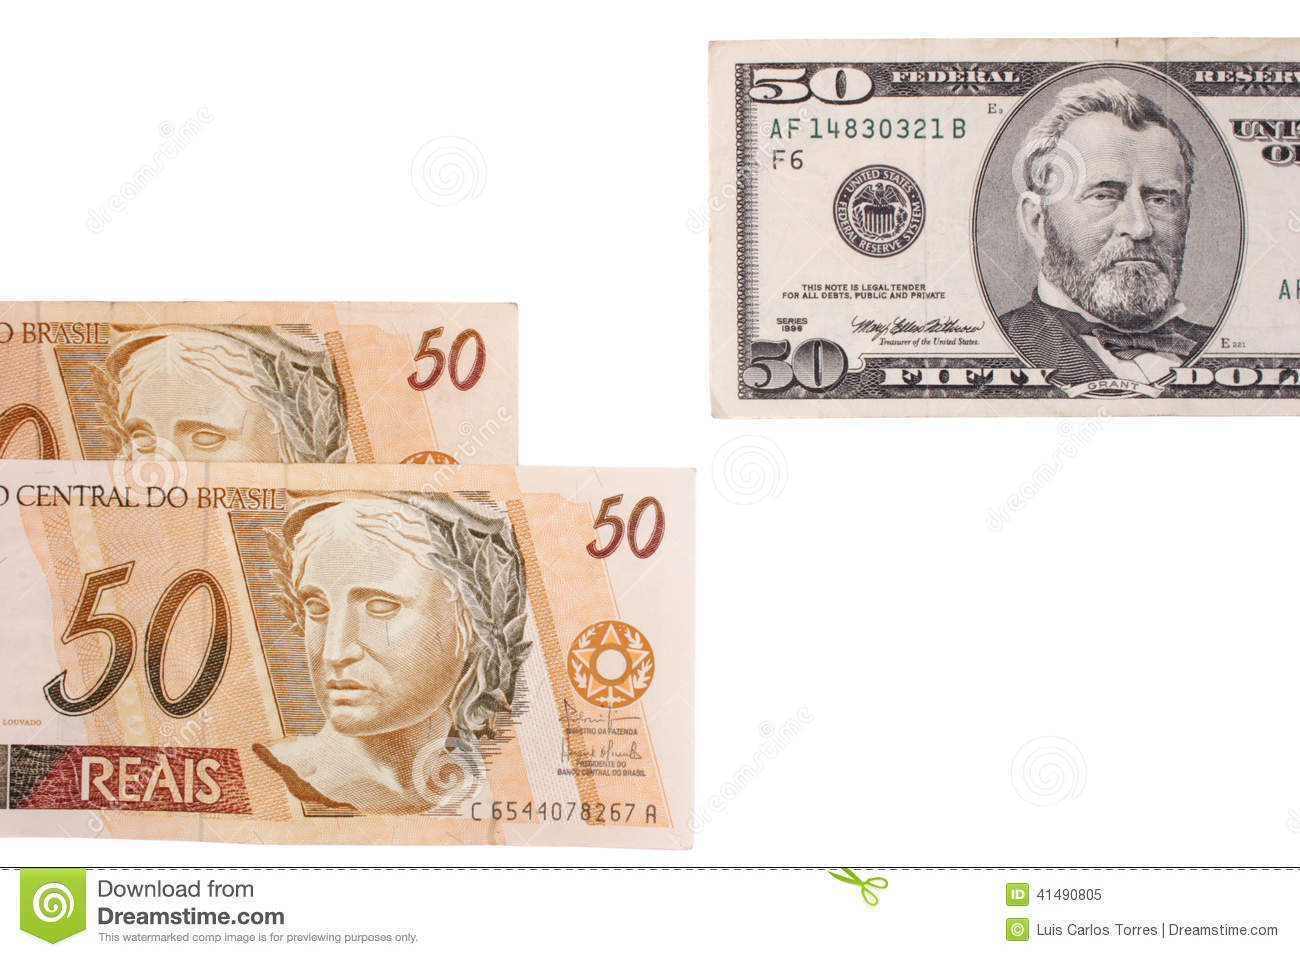 Make money exchanging currency